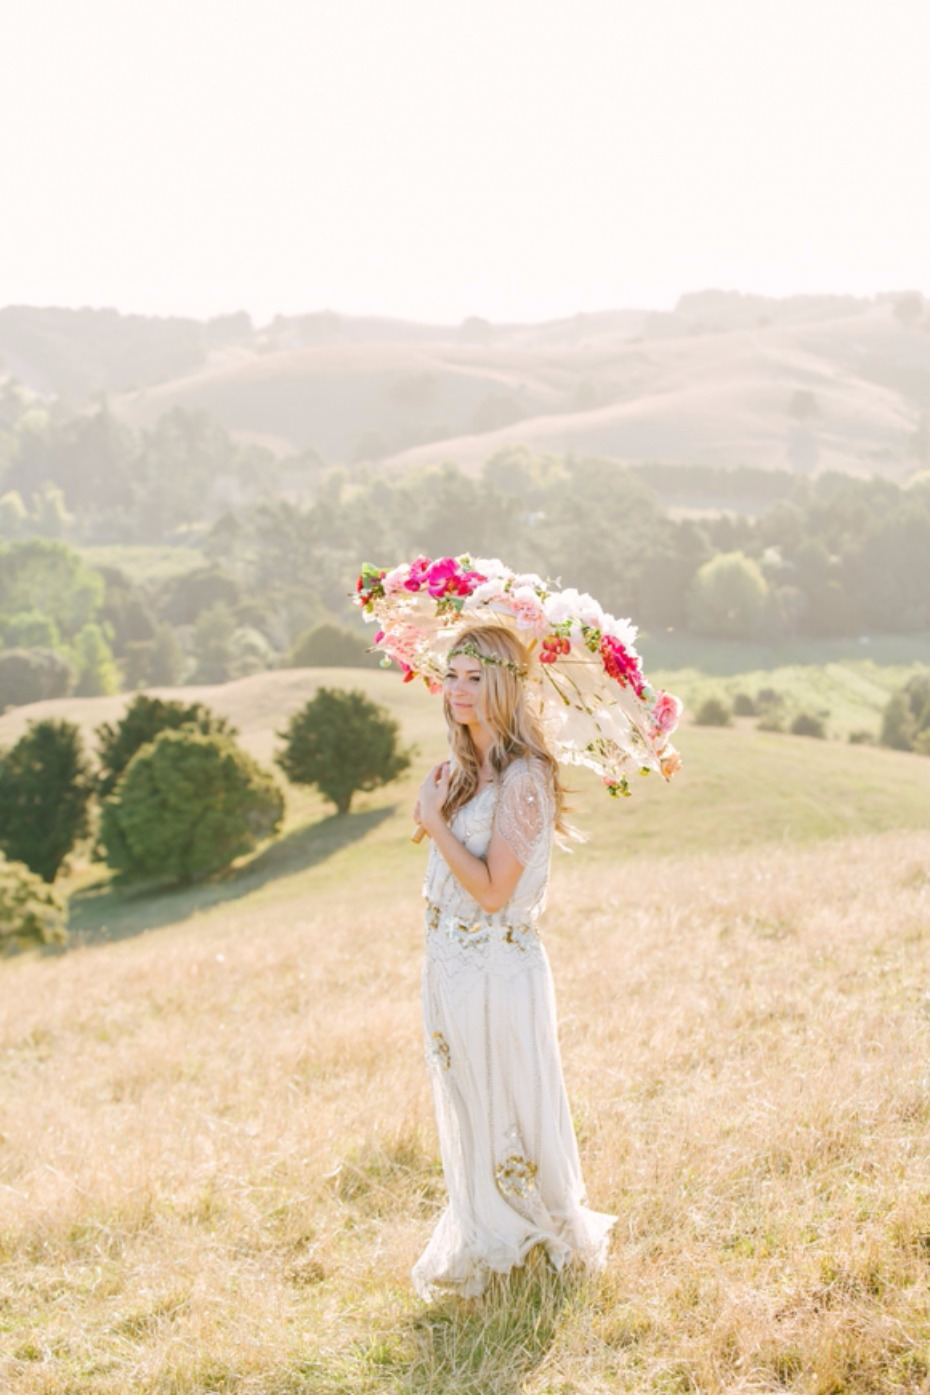 7 ways to use parasols in your wedding